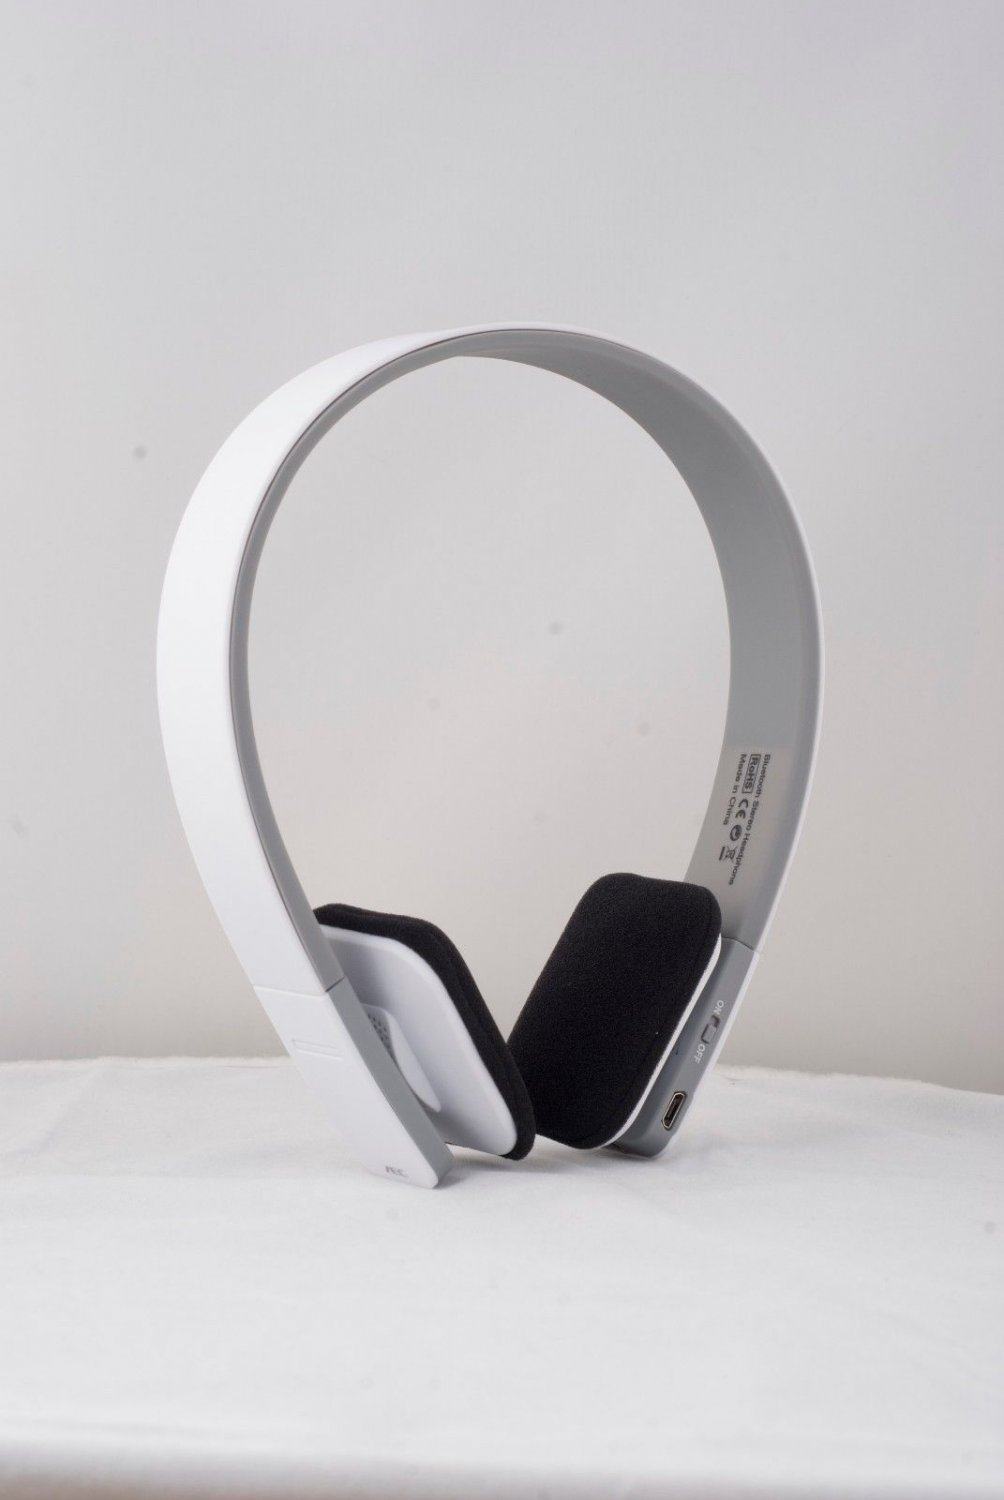 New Wireless Stereo Bluetooth Headphon for Mobile Cell Phone Tablet-Laptop White